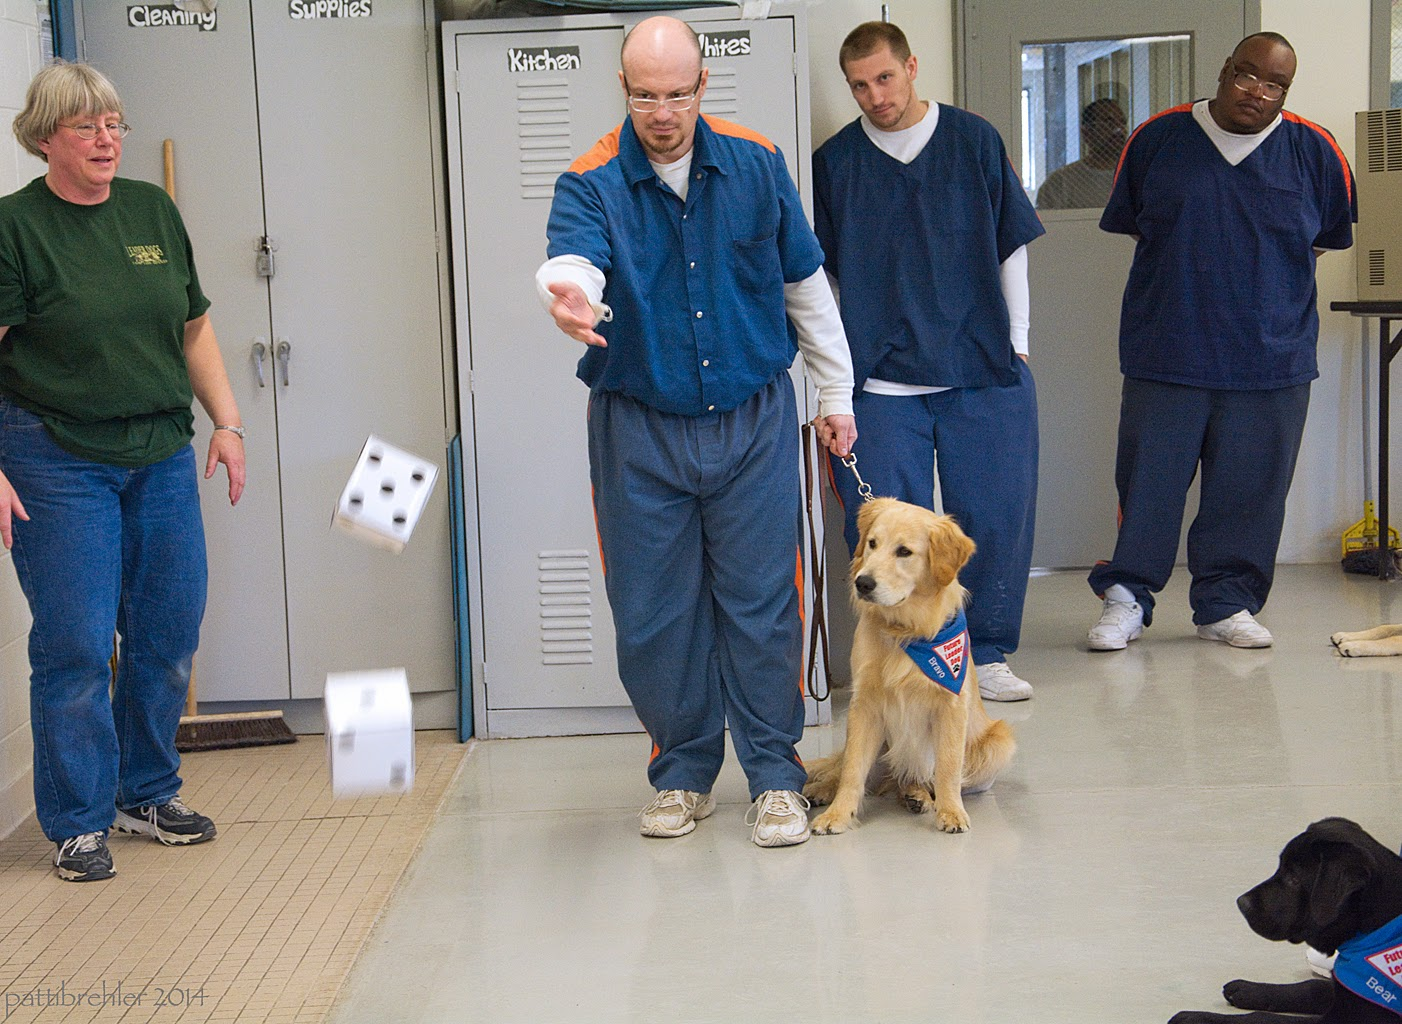 A woman dressed in a green t-shirt and blue jeans is standing on the left side in front of a grey cabinet. A man dressed in the prison blue uniform with glasses just threw a pair of six inch dice. He is holding the leash of a golden retriever in his left hand. The golden is sitting on his left isde, leaning and looking at the dice. The puppy is wearing the blue Future Leader Dog bandana. Two other men dressed in the prison blue uniforms are standing behind and to the right. At the bottom right corner is the head and front paws of a black lab puppy, wearing the same blue bandana. The puppy is lying down on the painted cement floor and looking at the dice.